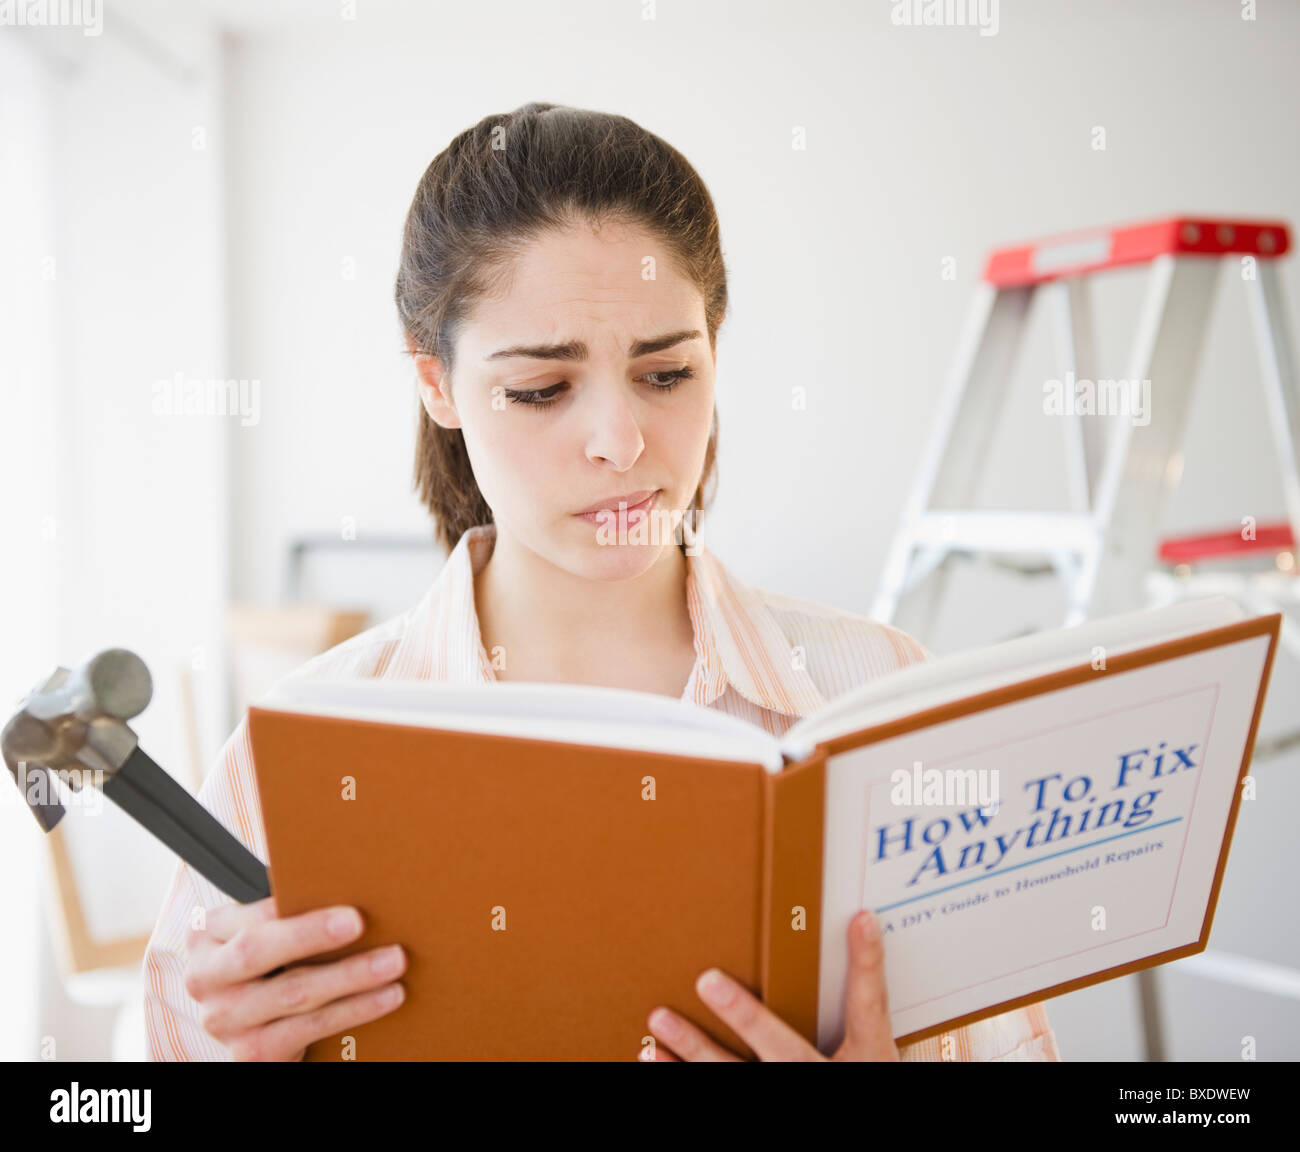 Confused woman reading do it yourself book - Stock Image